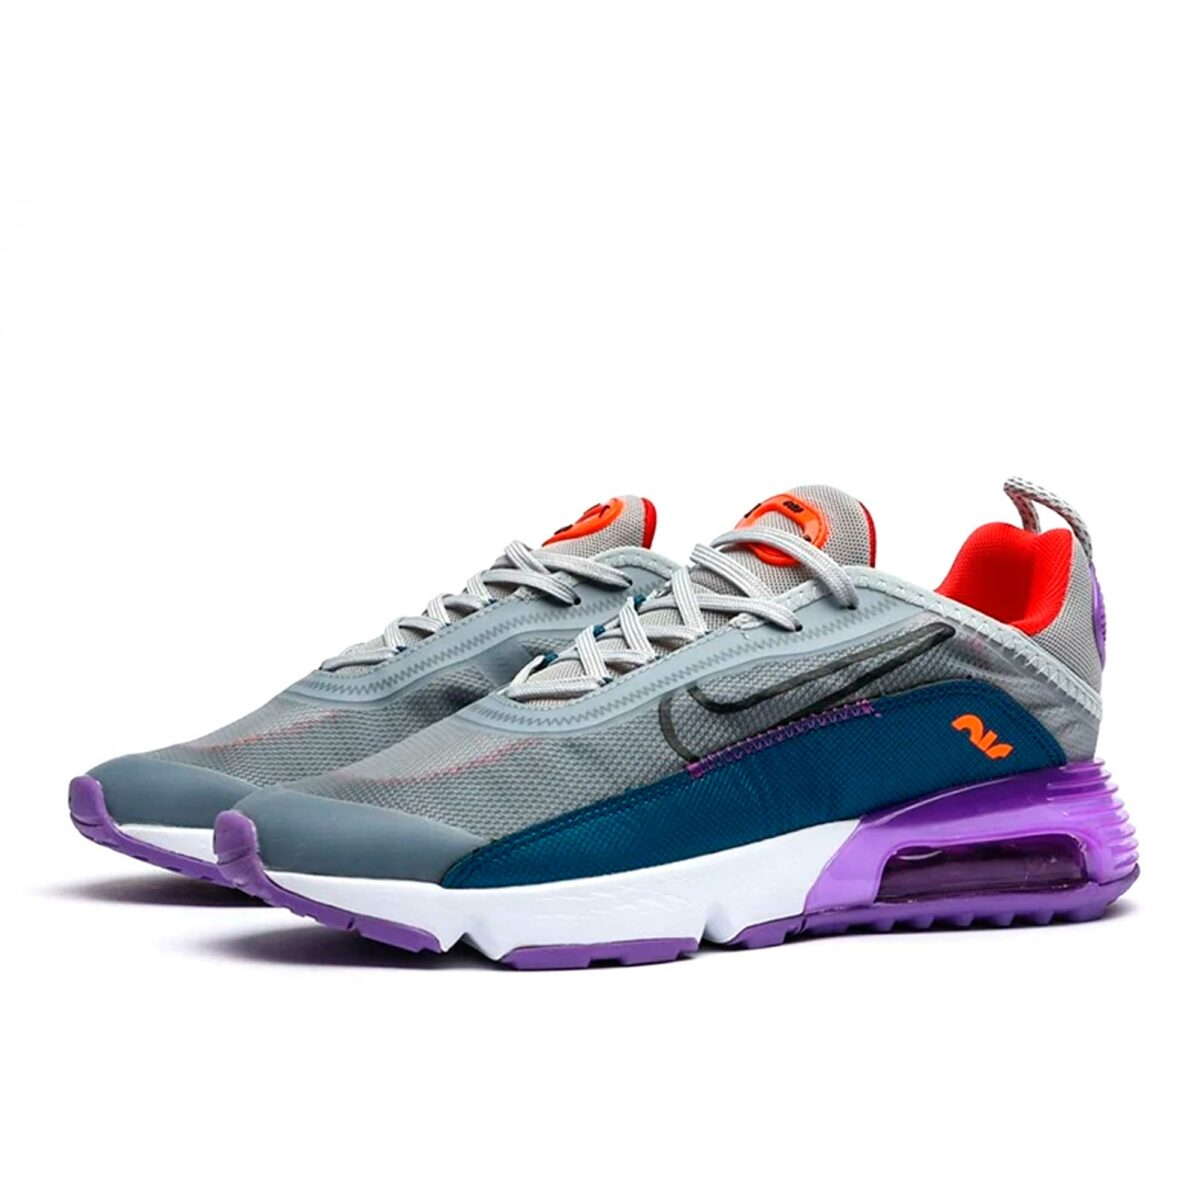 nike air max 2090 grey violet CT7698_003 купить